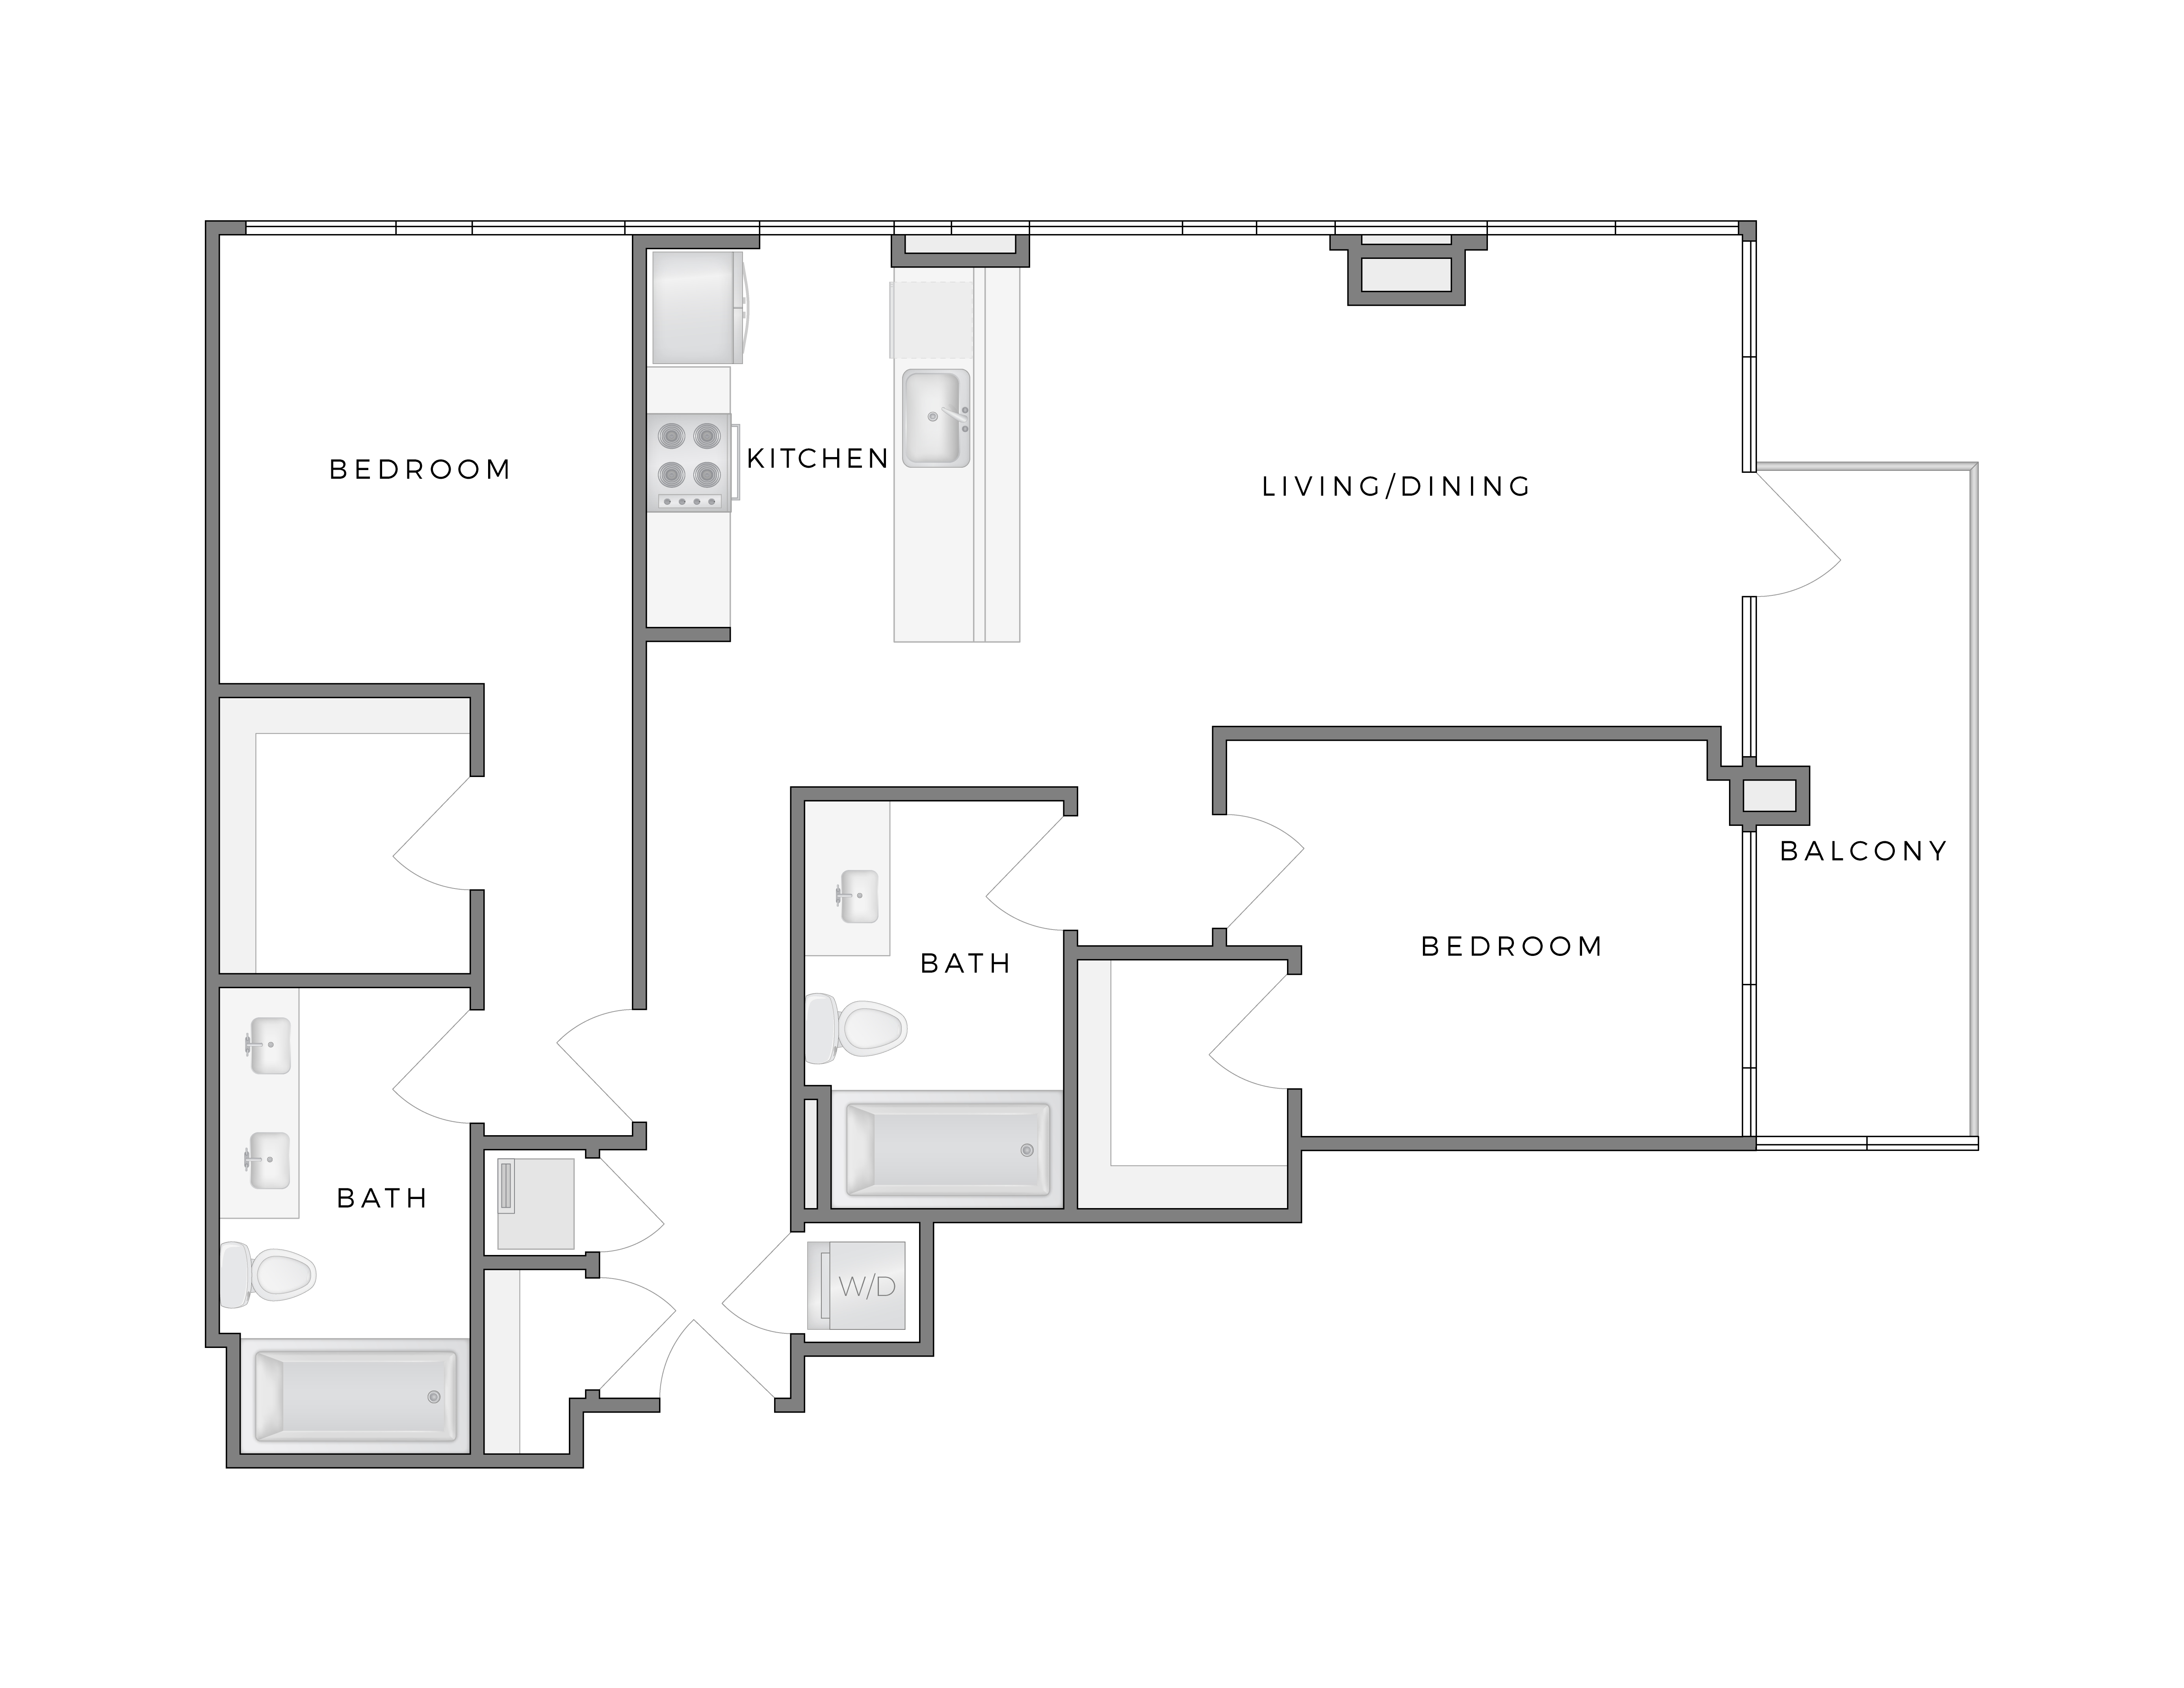 Atelier Highrise Apt Floorplans Hopper 4 2 Bedroom 2 Bath Dtla Apt